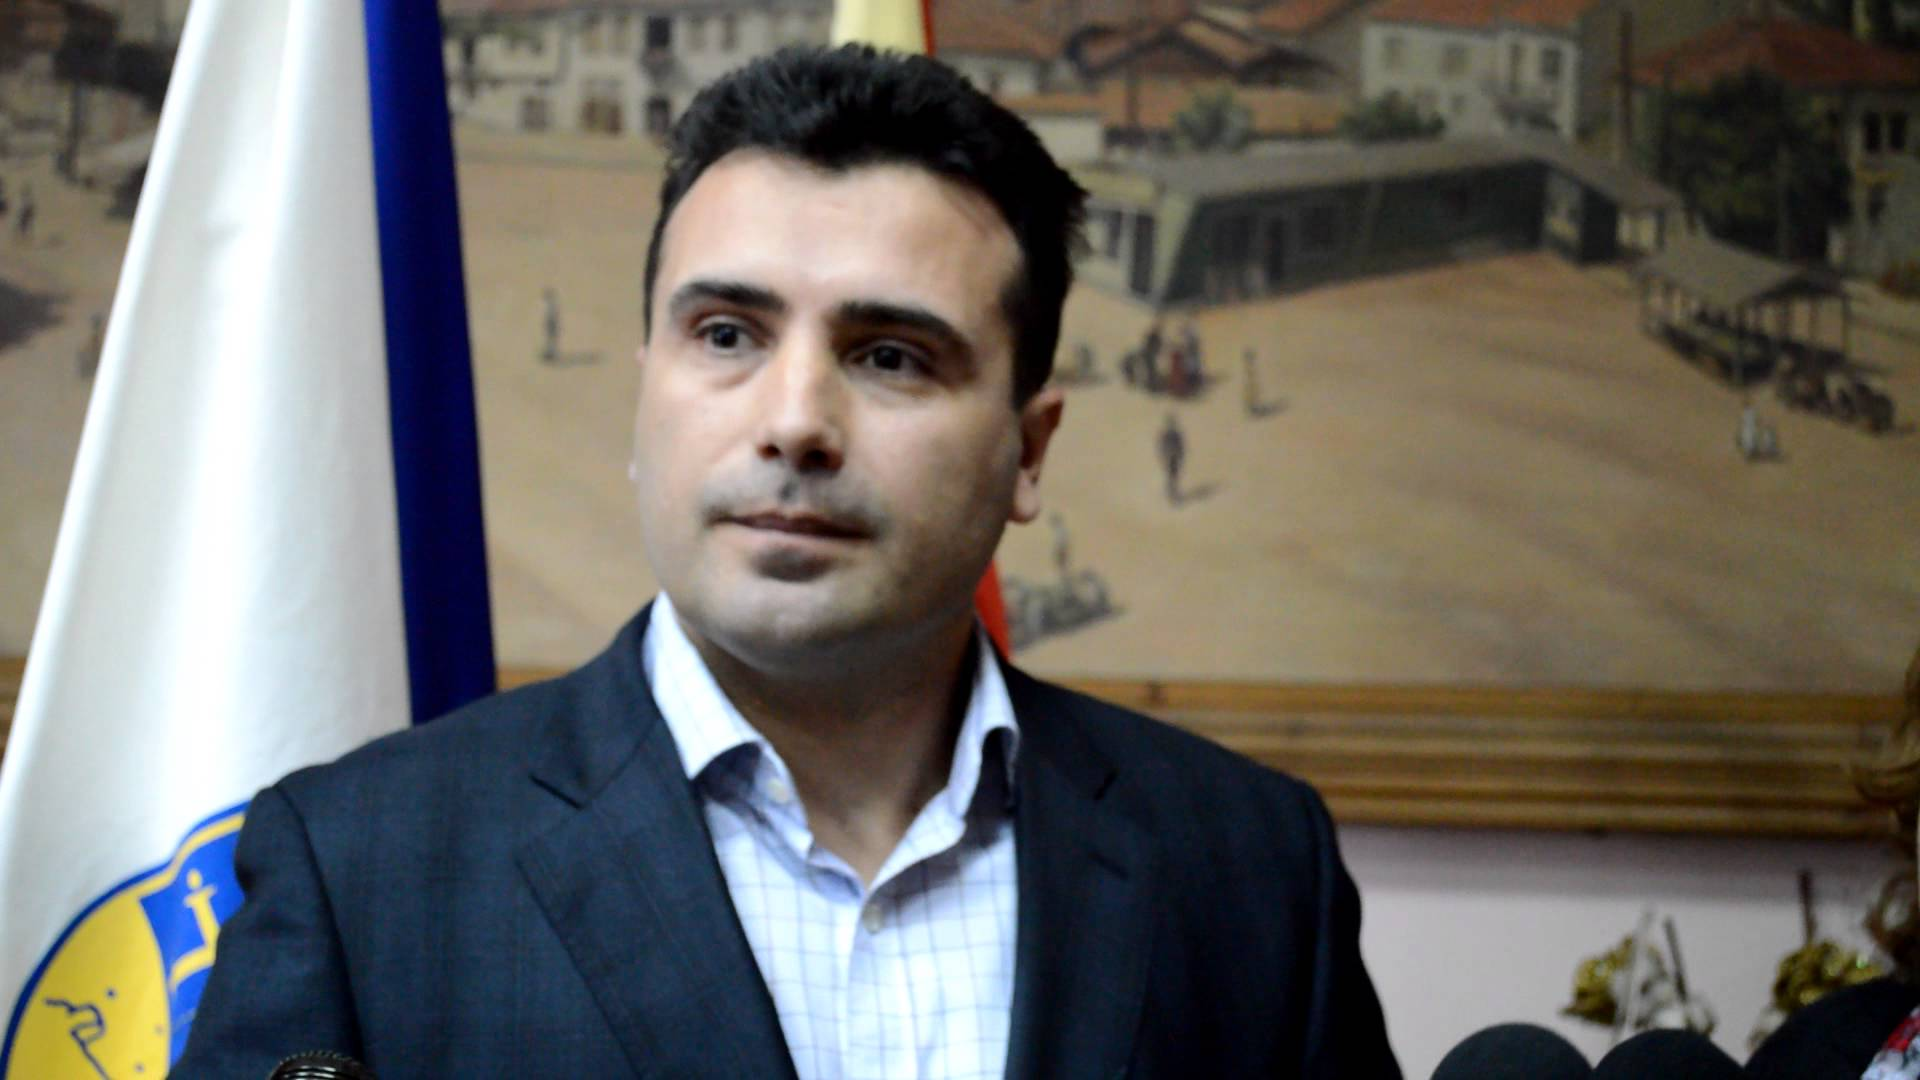 Zoran Zaev is elected as the head of the largest opposition party in FYR Macedonia